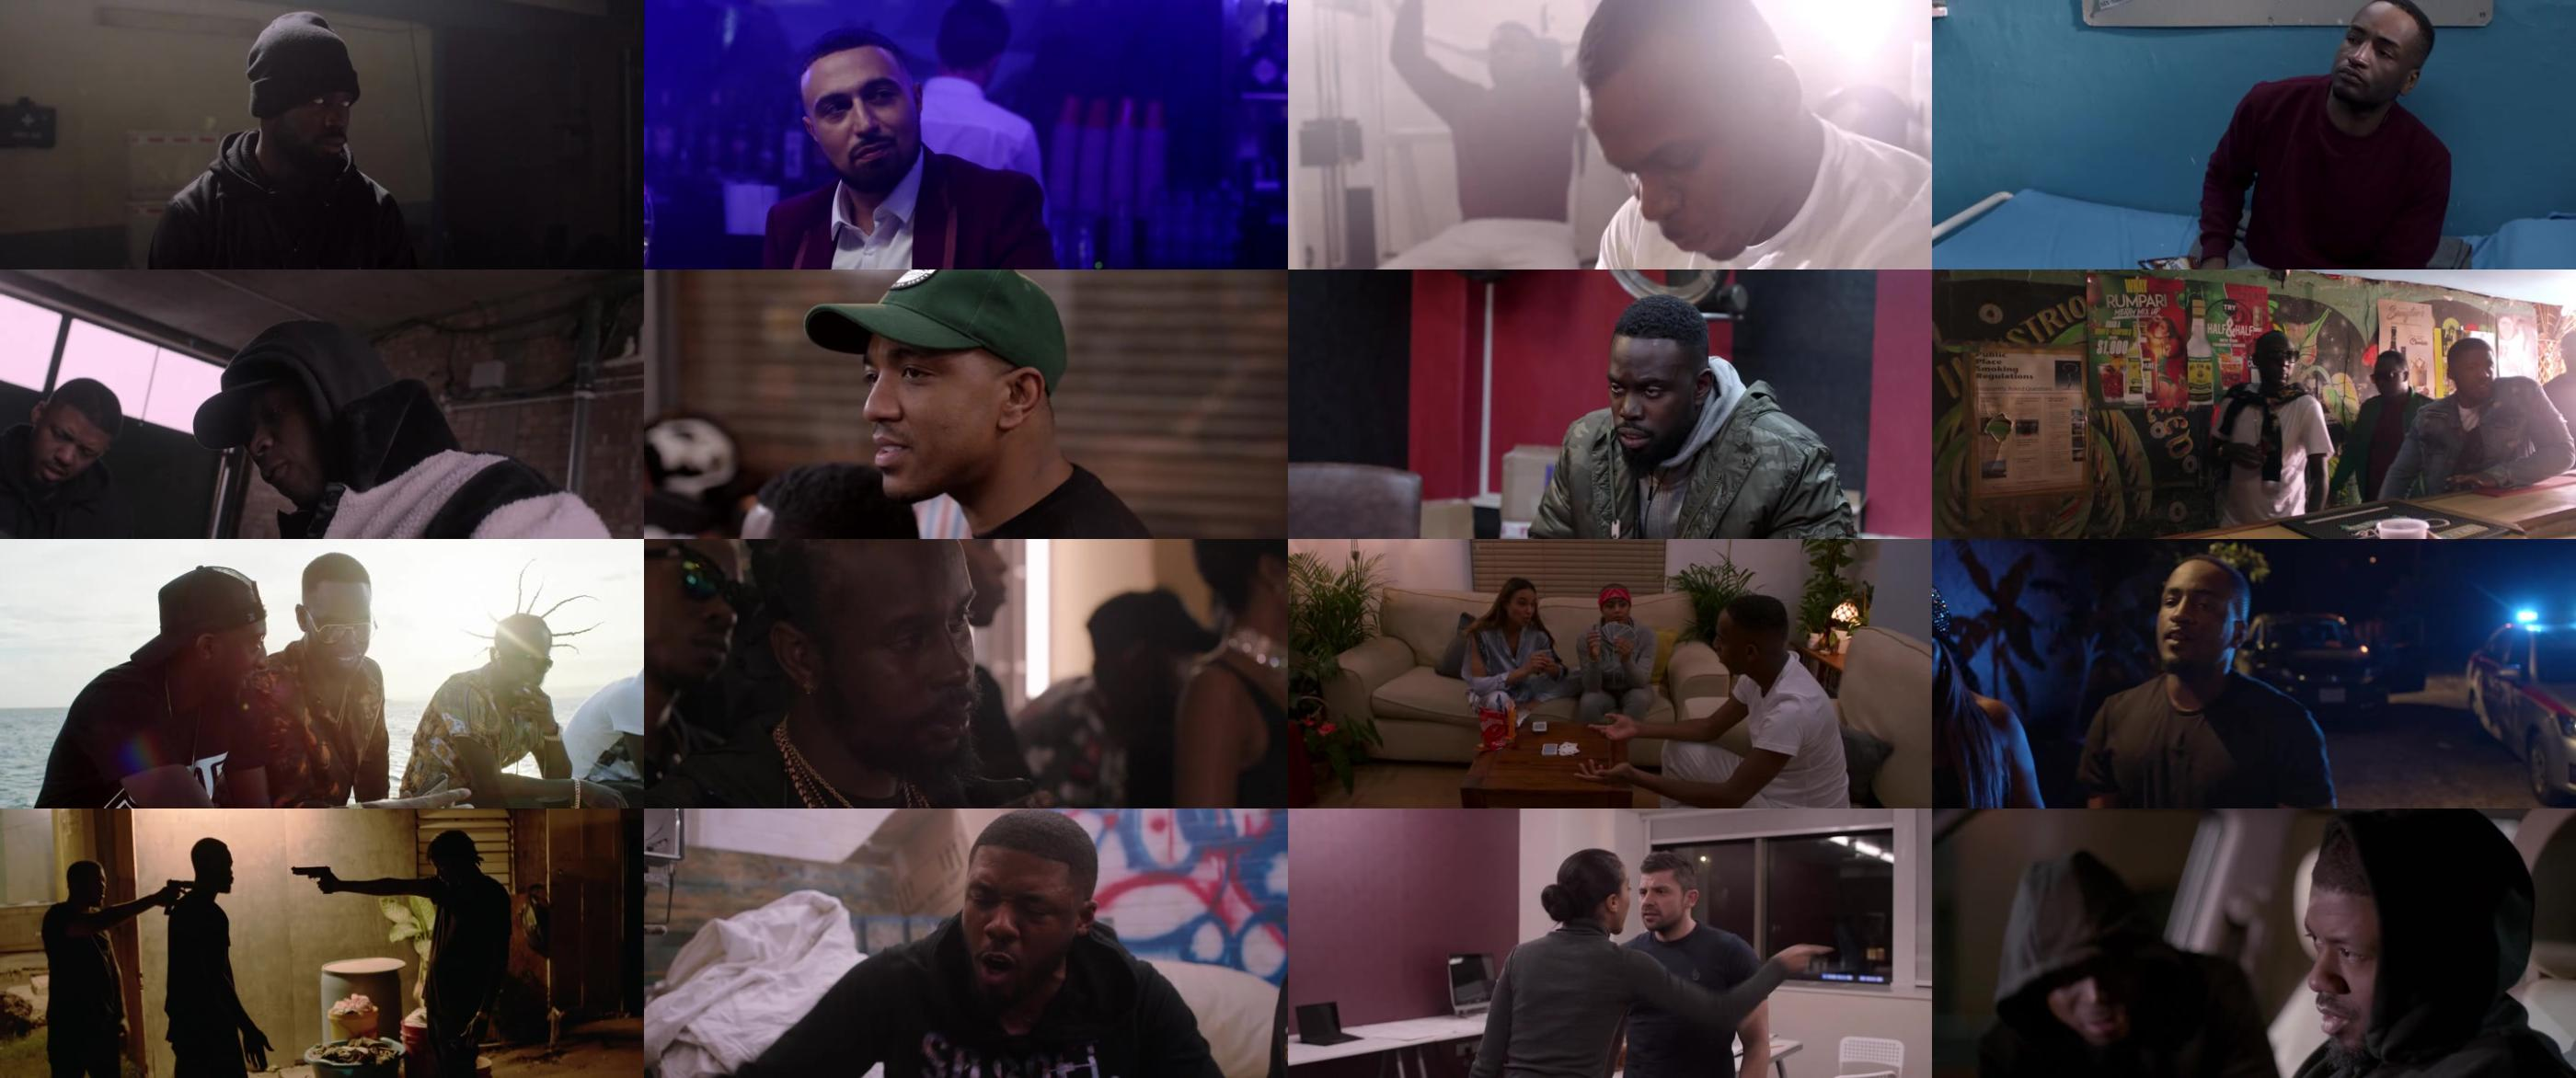 The Intent 2 The Come Up 2018 BRRip XviD AC3 XVID